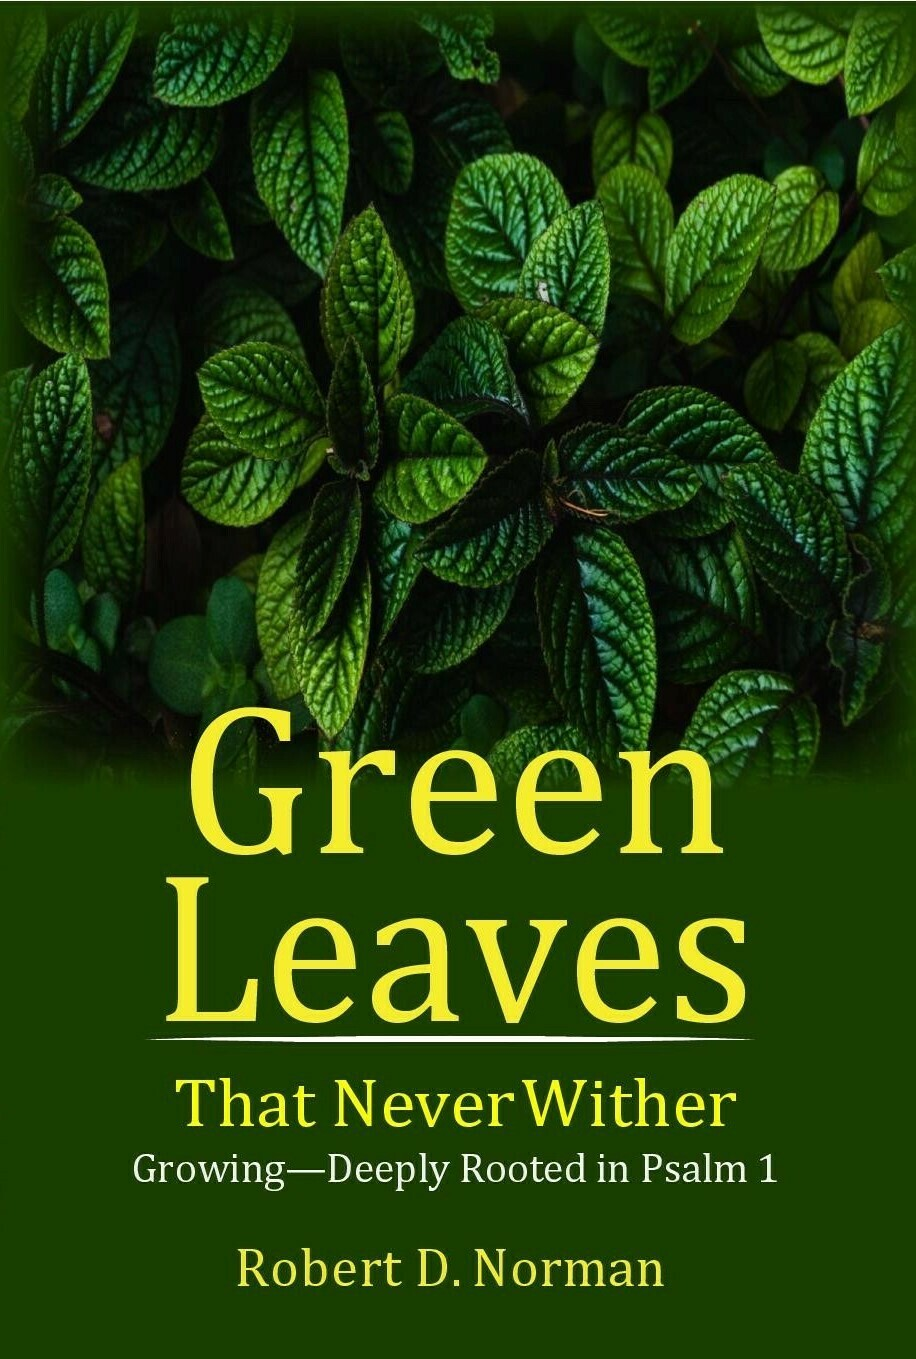 Green Leaves That Never Wither: Growing--Deeply Rooted in Psalm 1 by Robert D. Norman